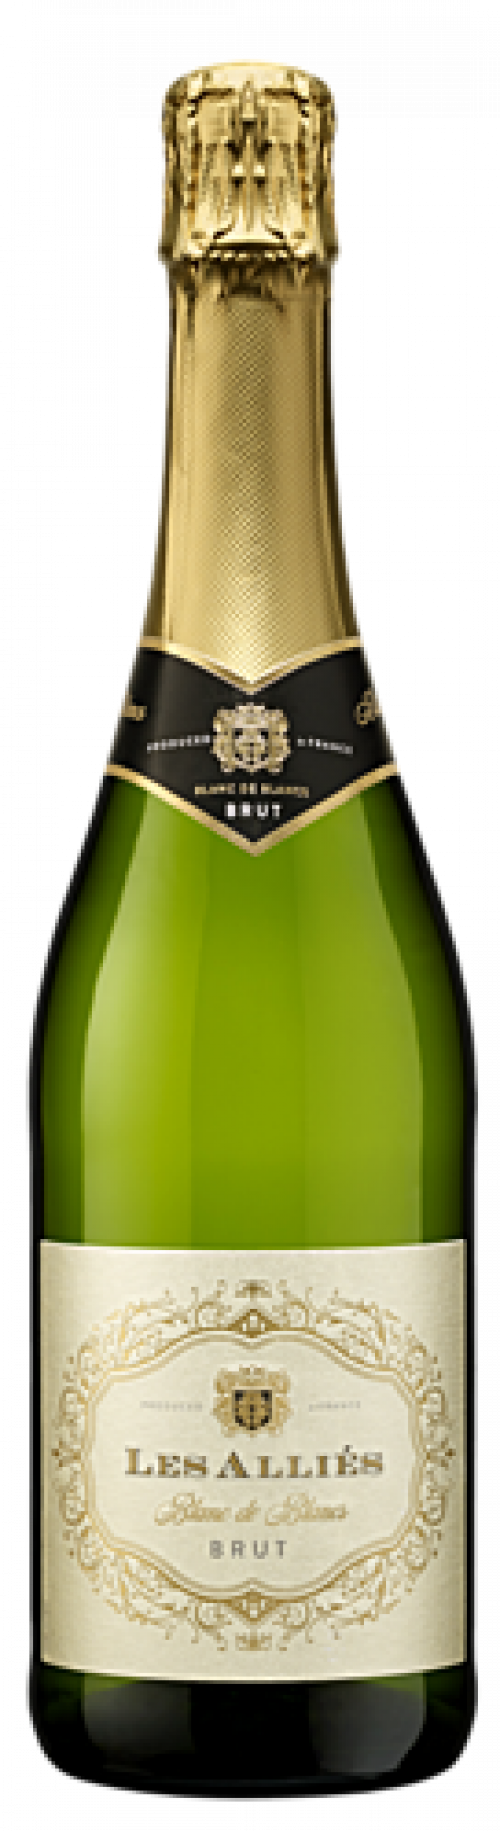 Les Allies Blanc De Blancs Brut 750ml